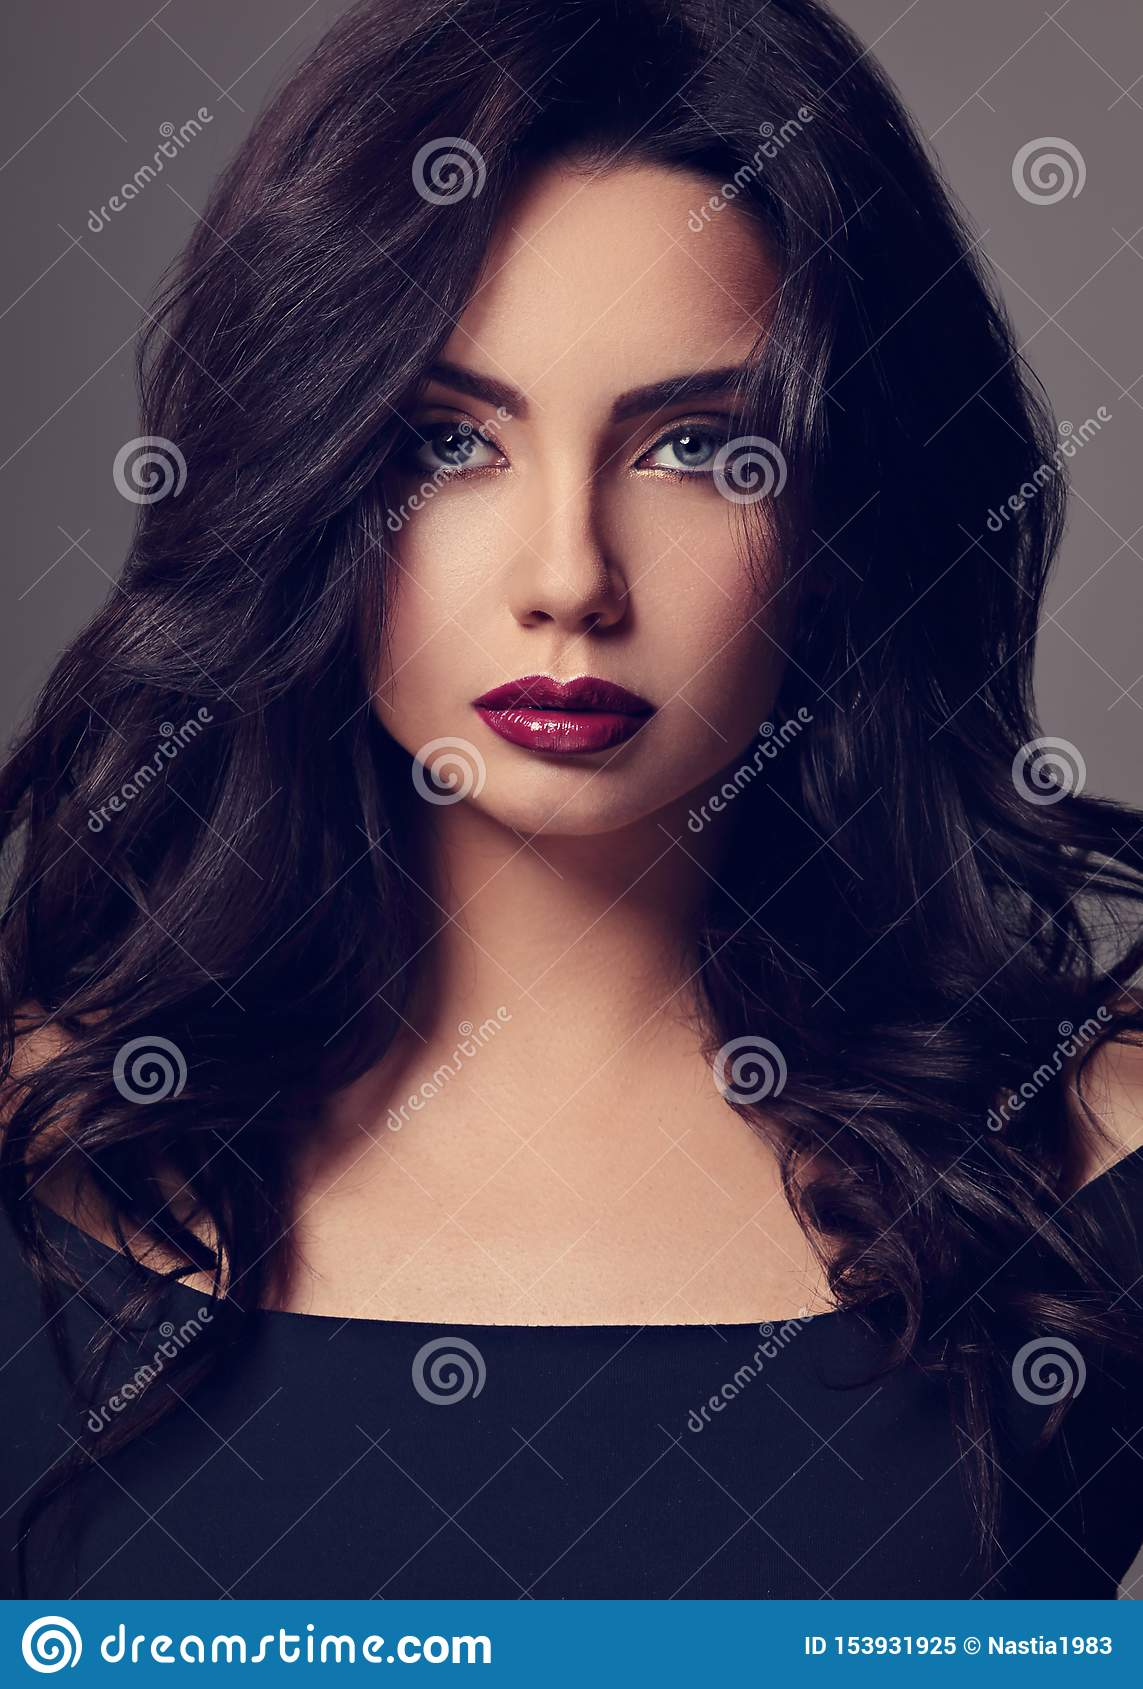 Beautiful Indian Bright Makeup Woman With Long Black Curly